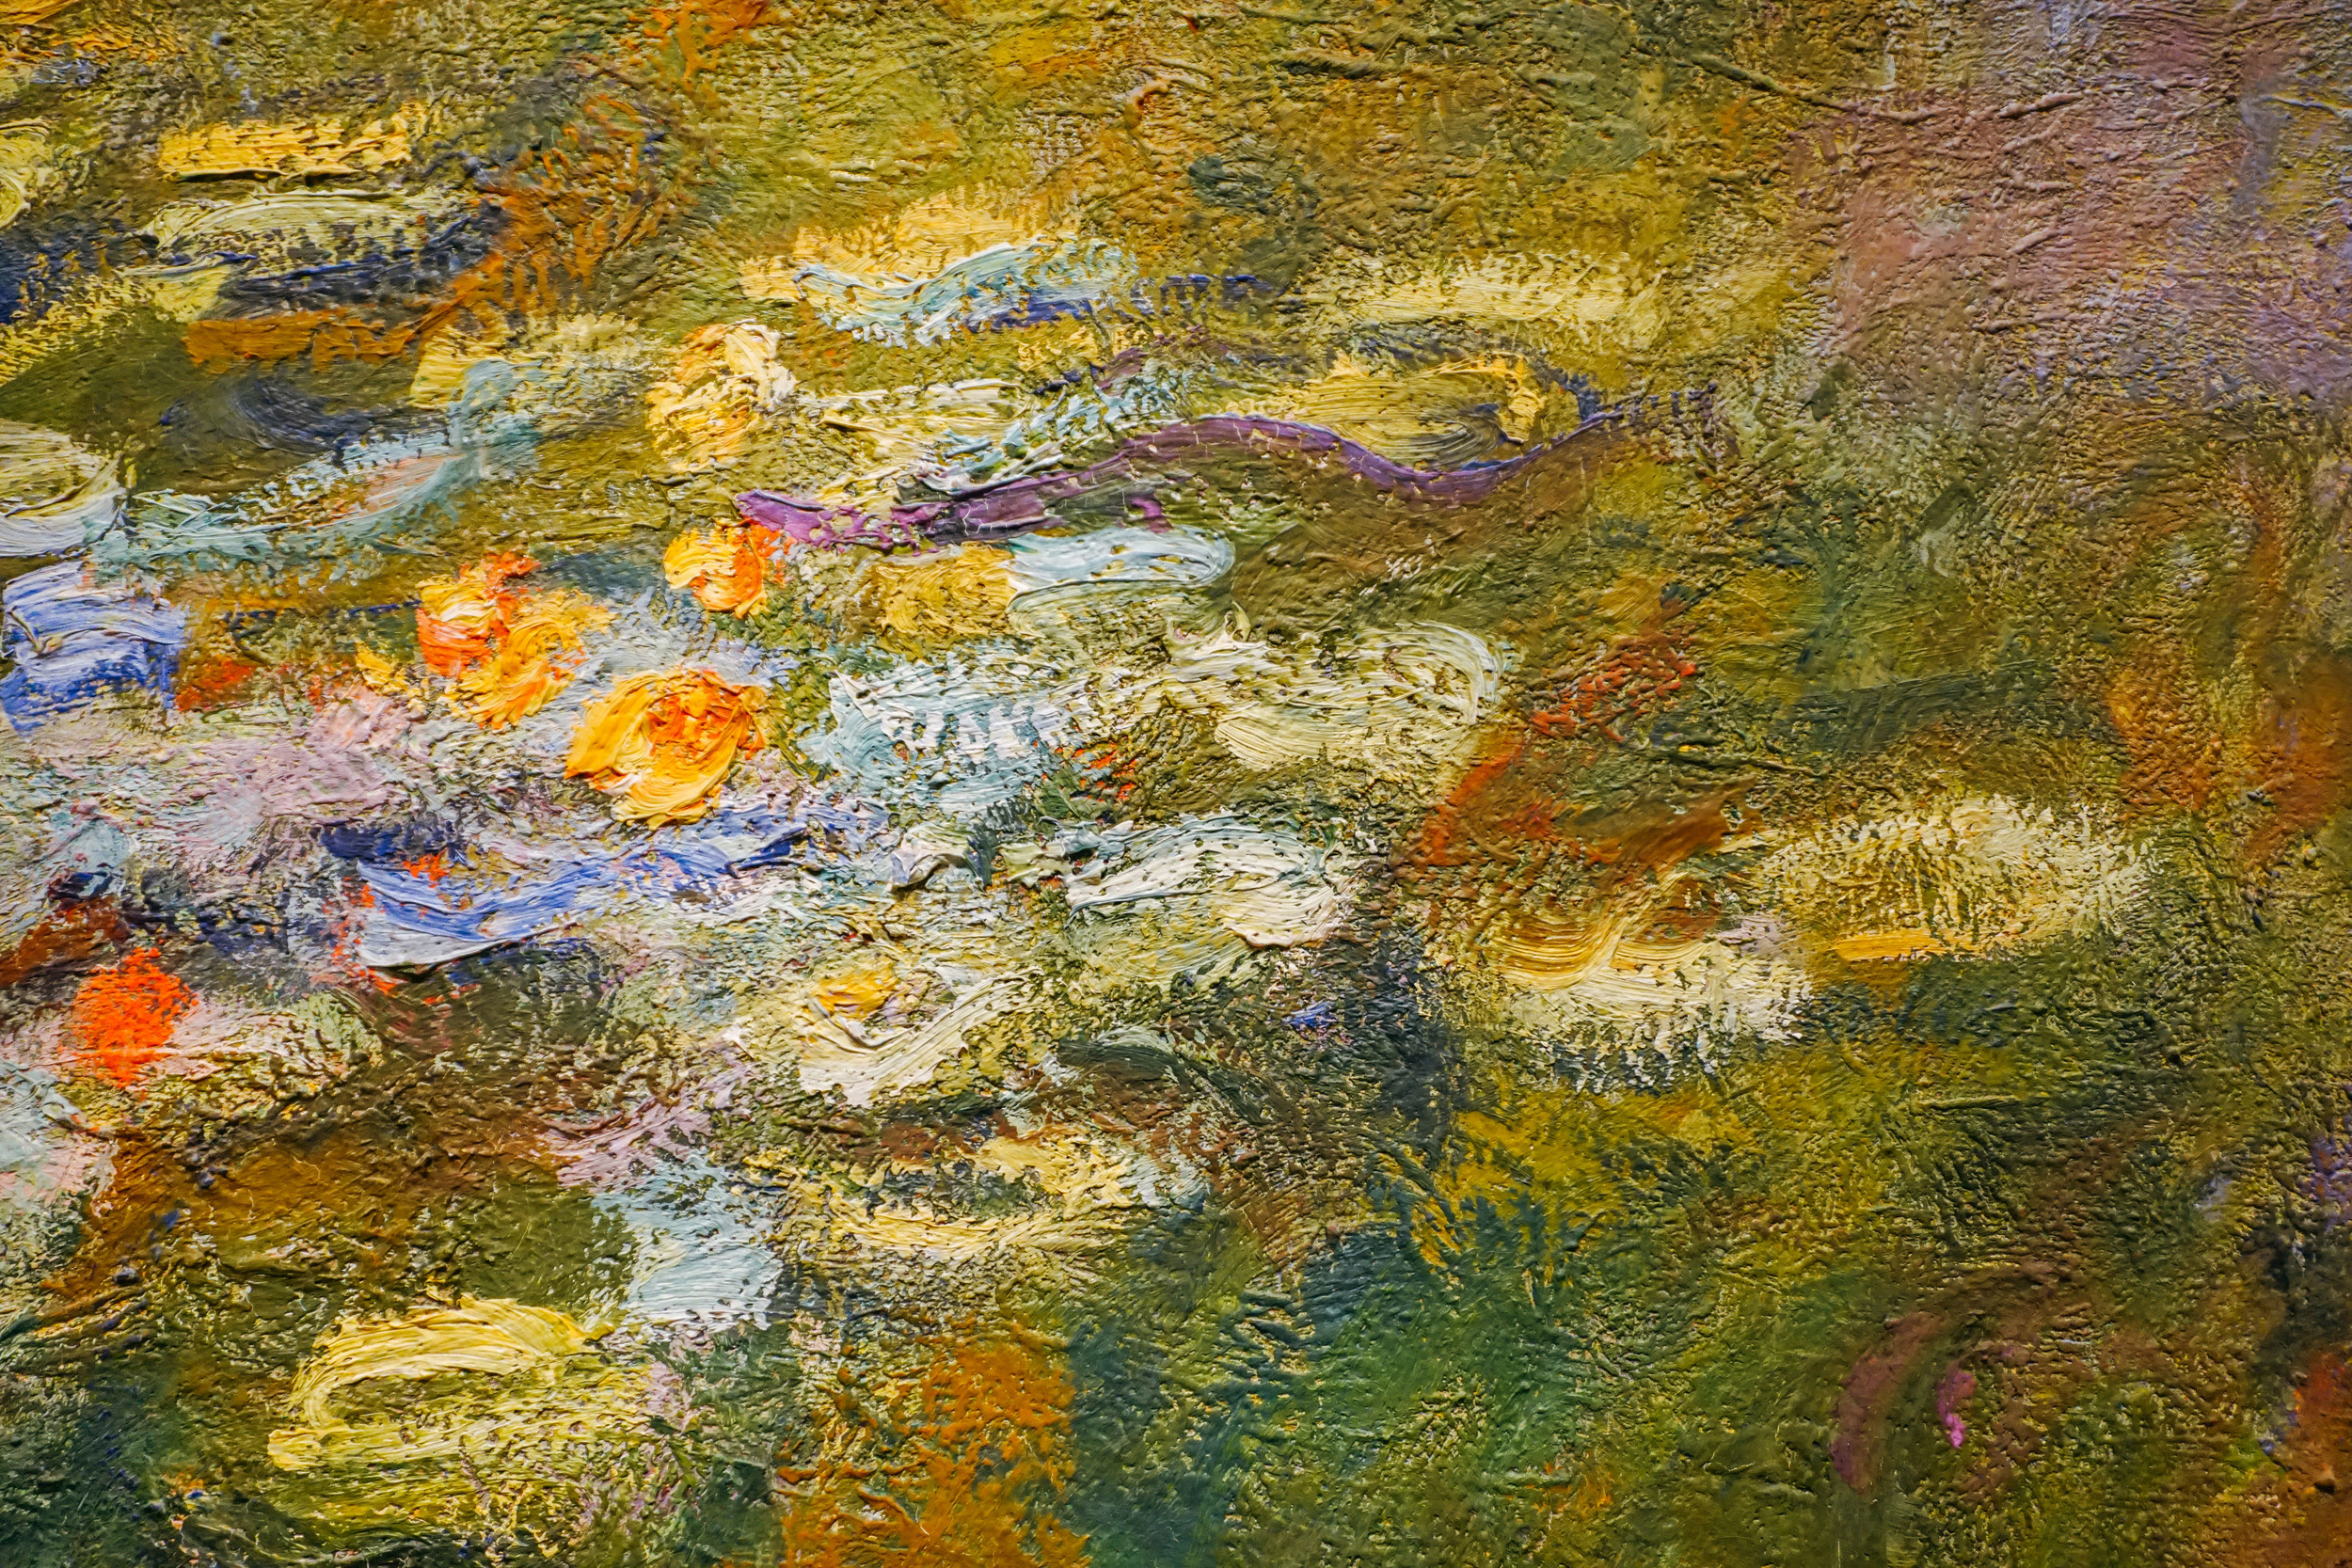 Art Institute of Chicago, Millennium Park. United States of America. Monet